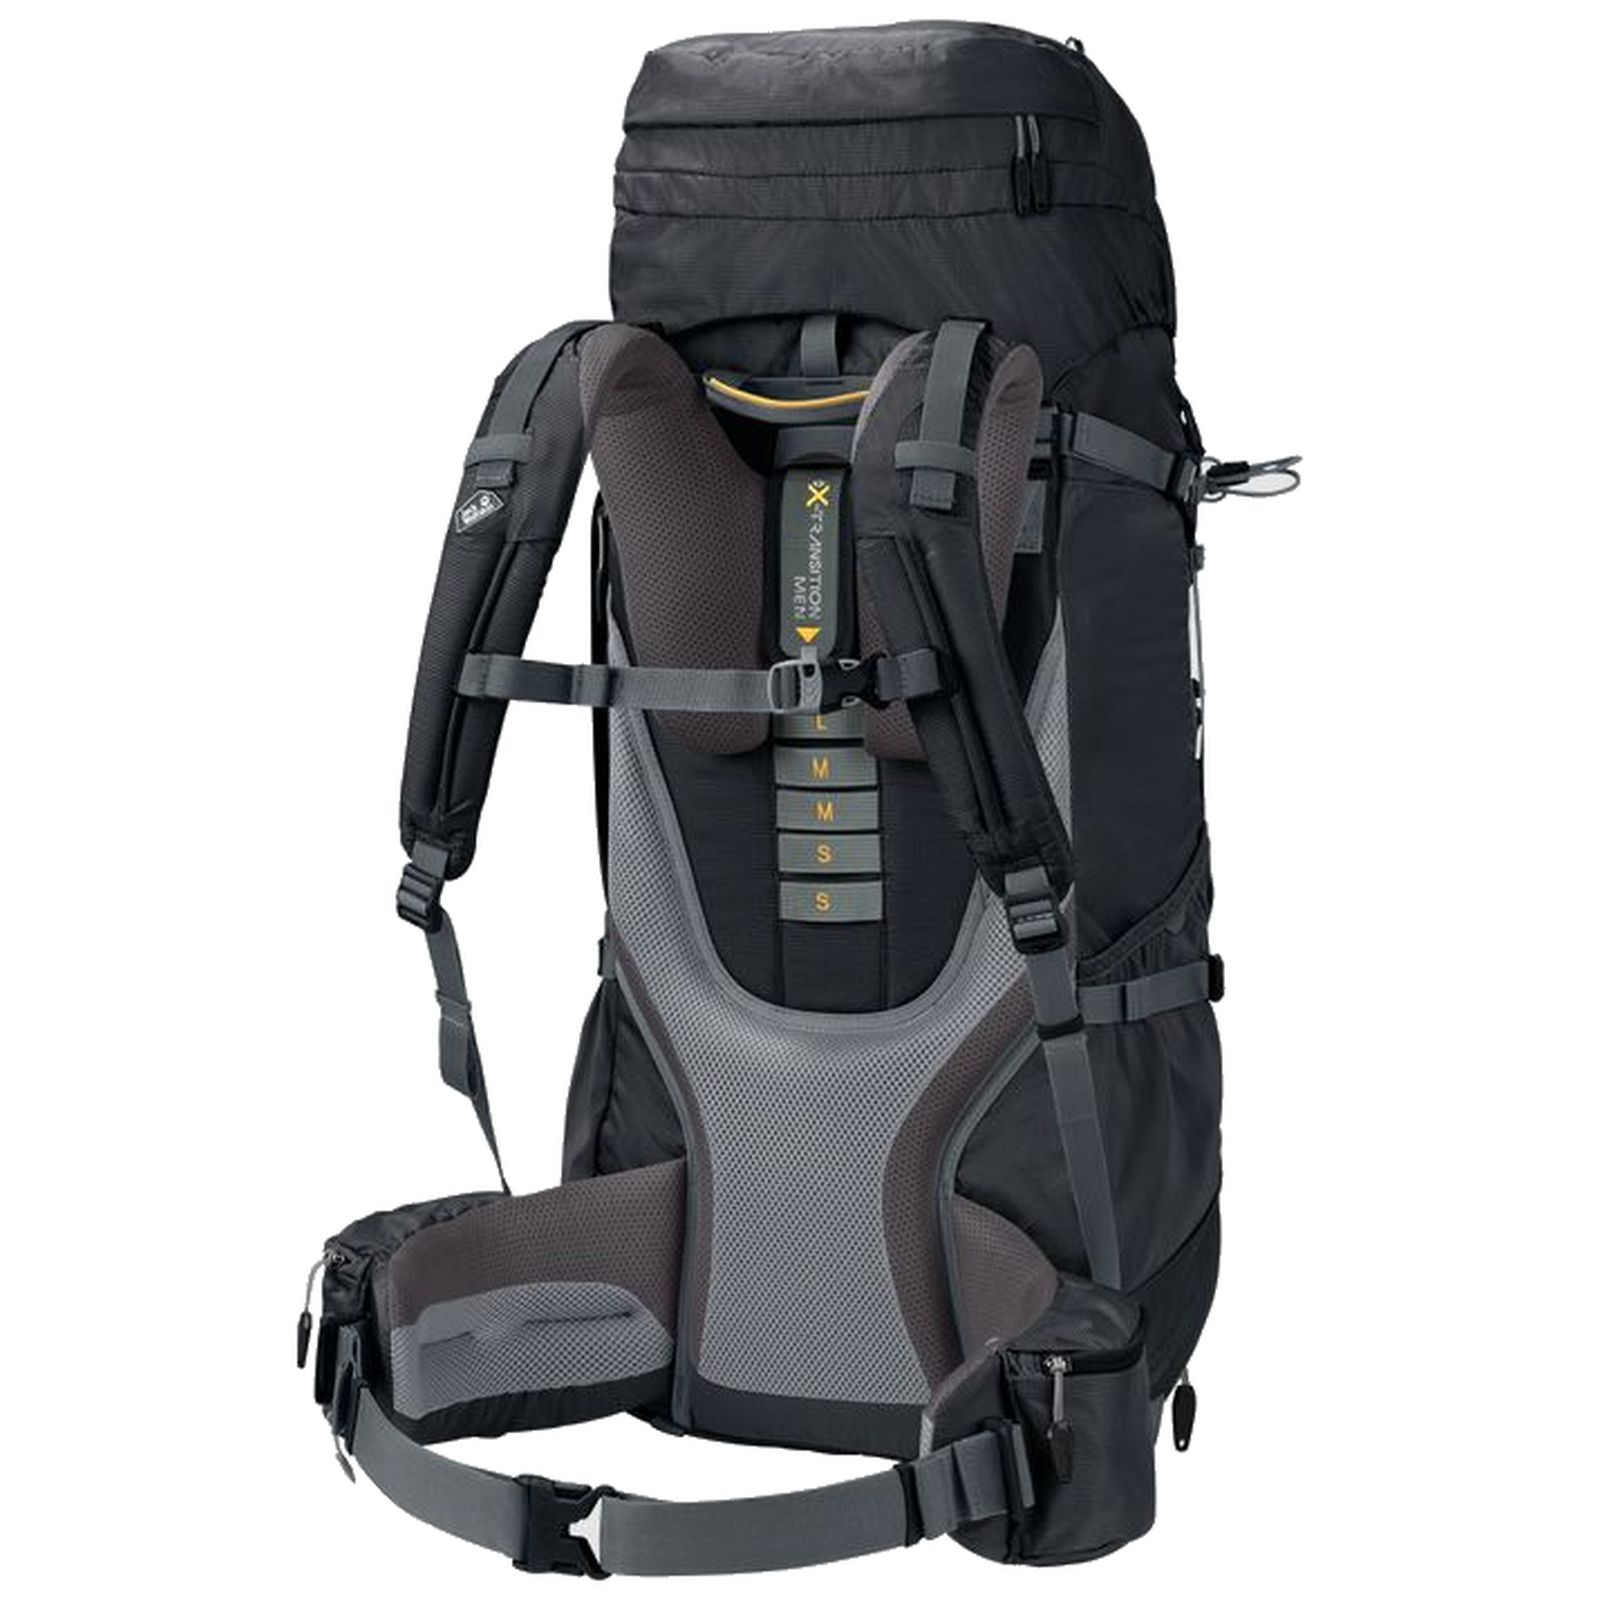 Xt Original About Title Wolfskin 50 Mens Show Details Trekking Hiking Highland Phantom Trail Jack Backpack jL34AR5